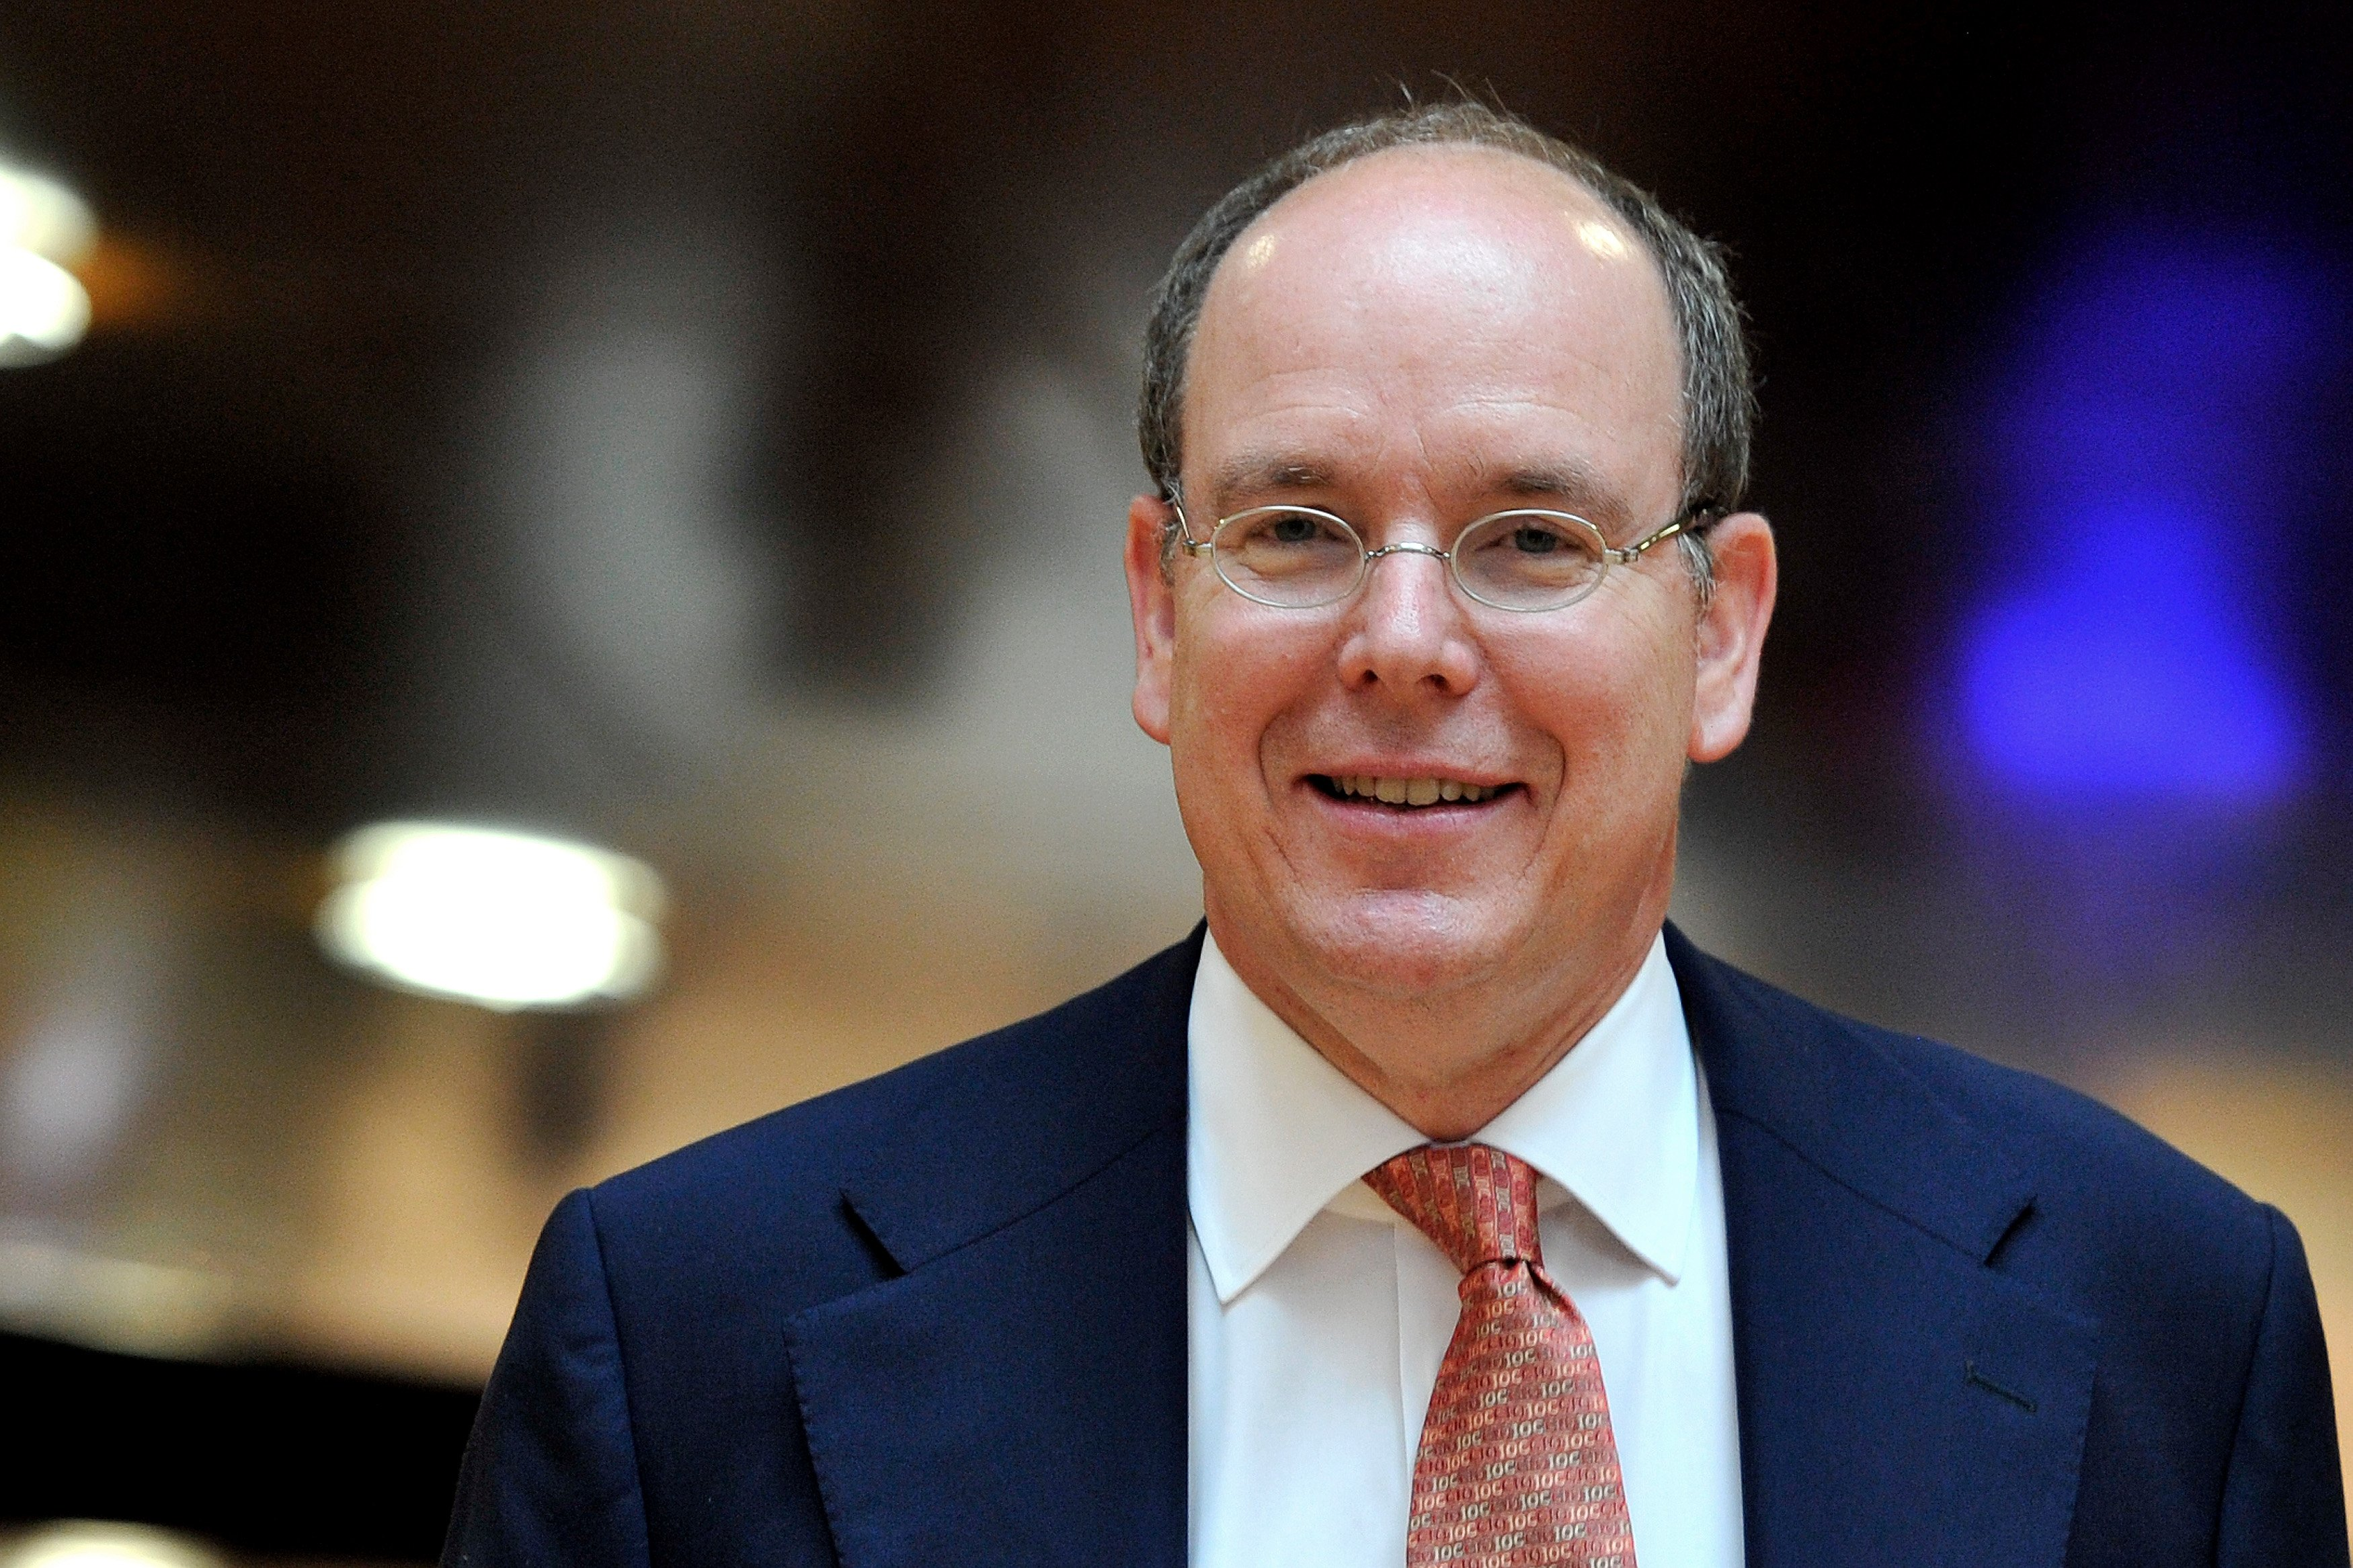 Prince Albert II of Monaco during his 2013 presentation for the third Summer Youth Olympic Games 2018 bid in Switzerland. | Photo: Getty Images